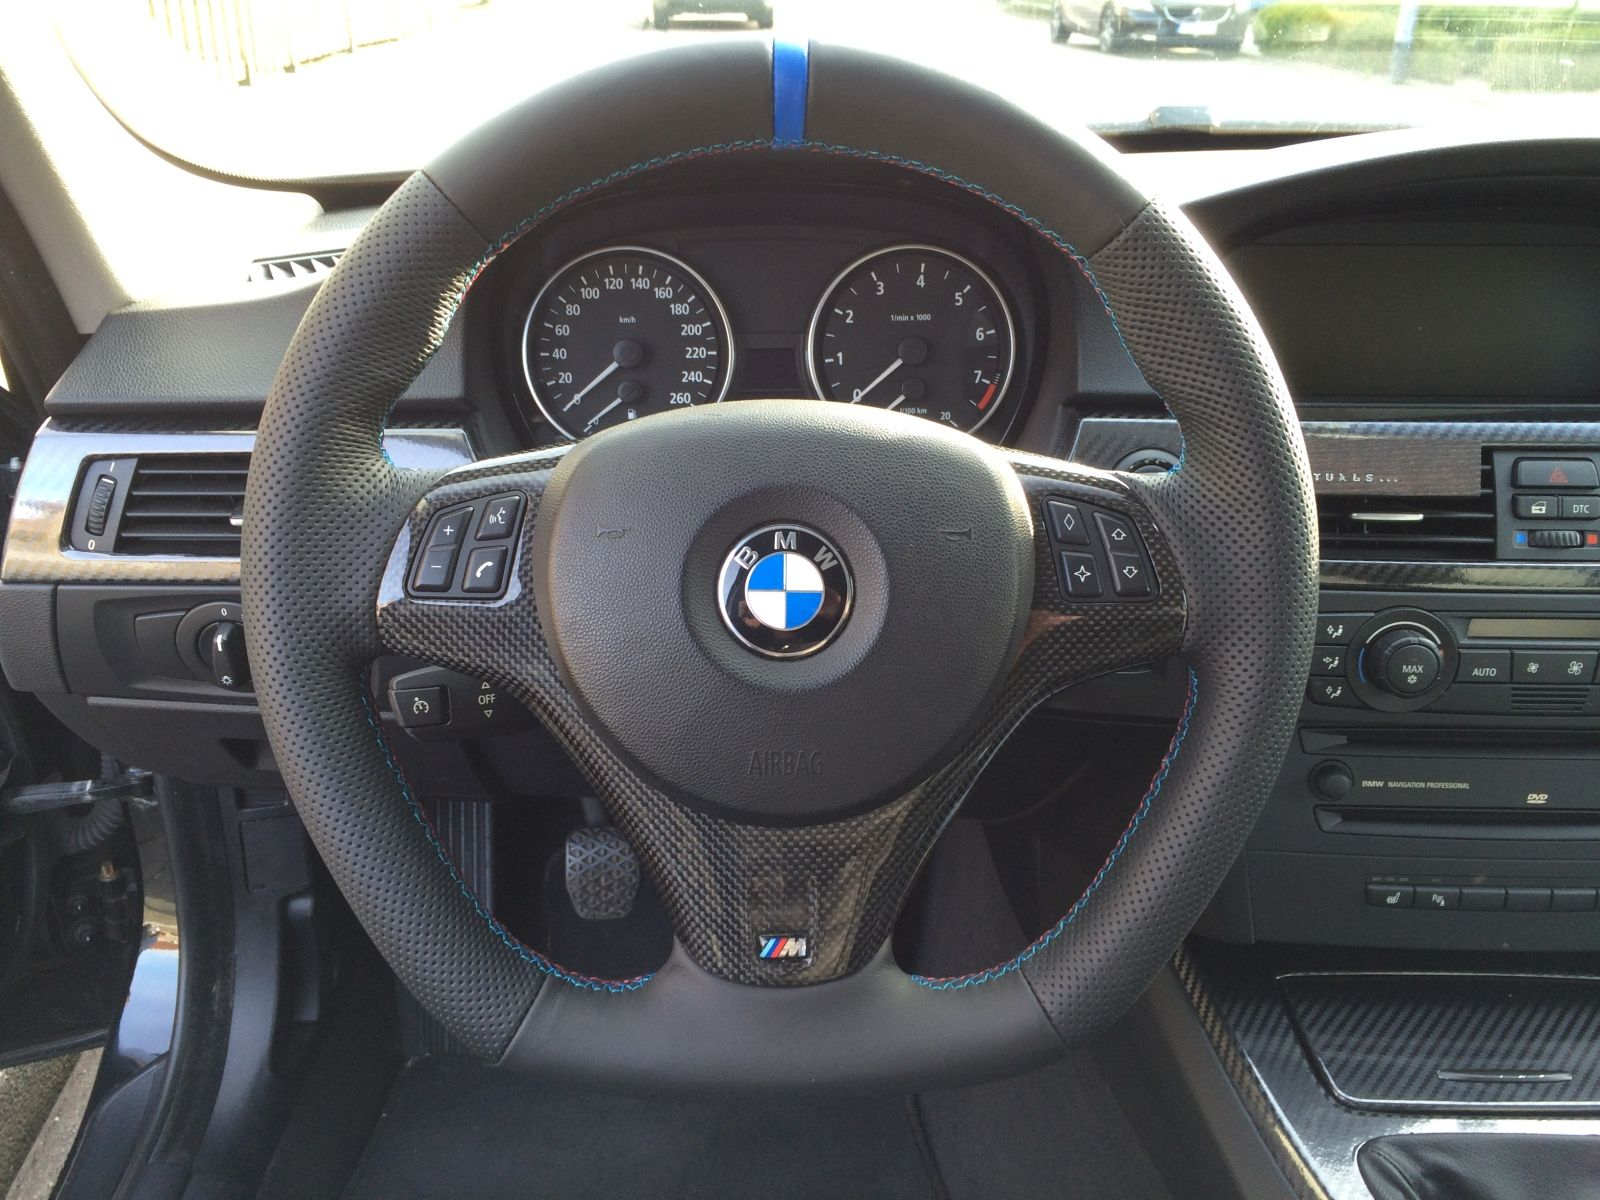 E91 Picture Thread Page 112 With Images Bmw Wheels Inside